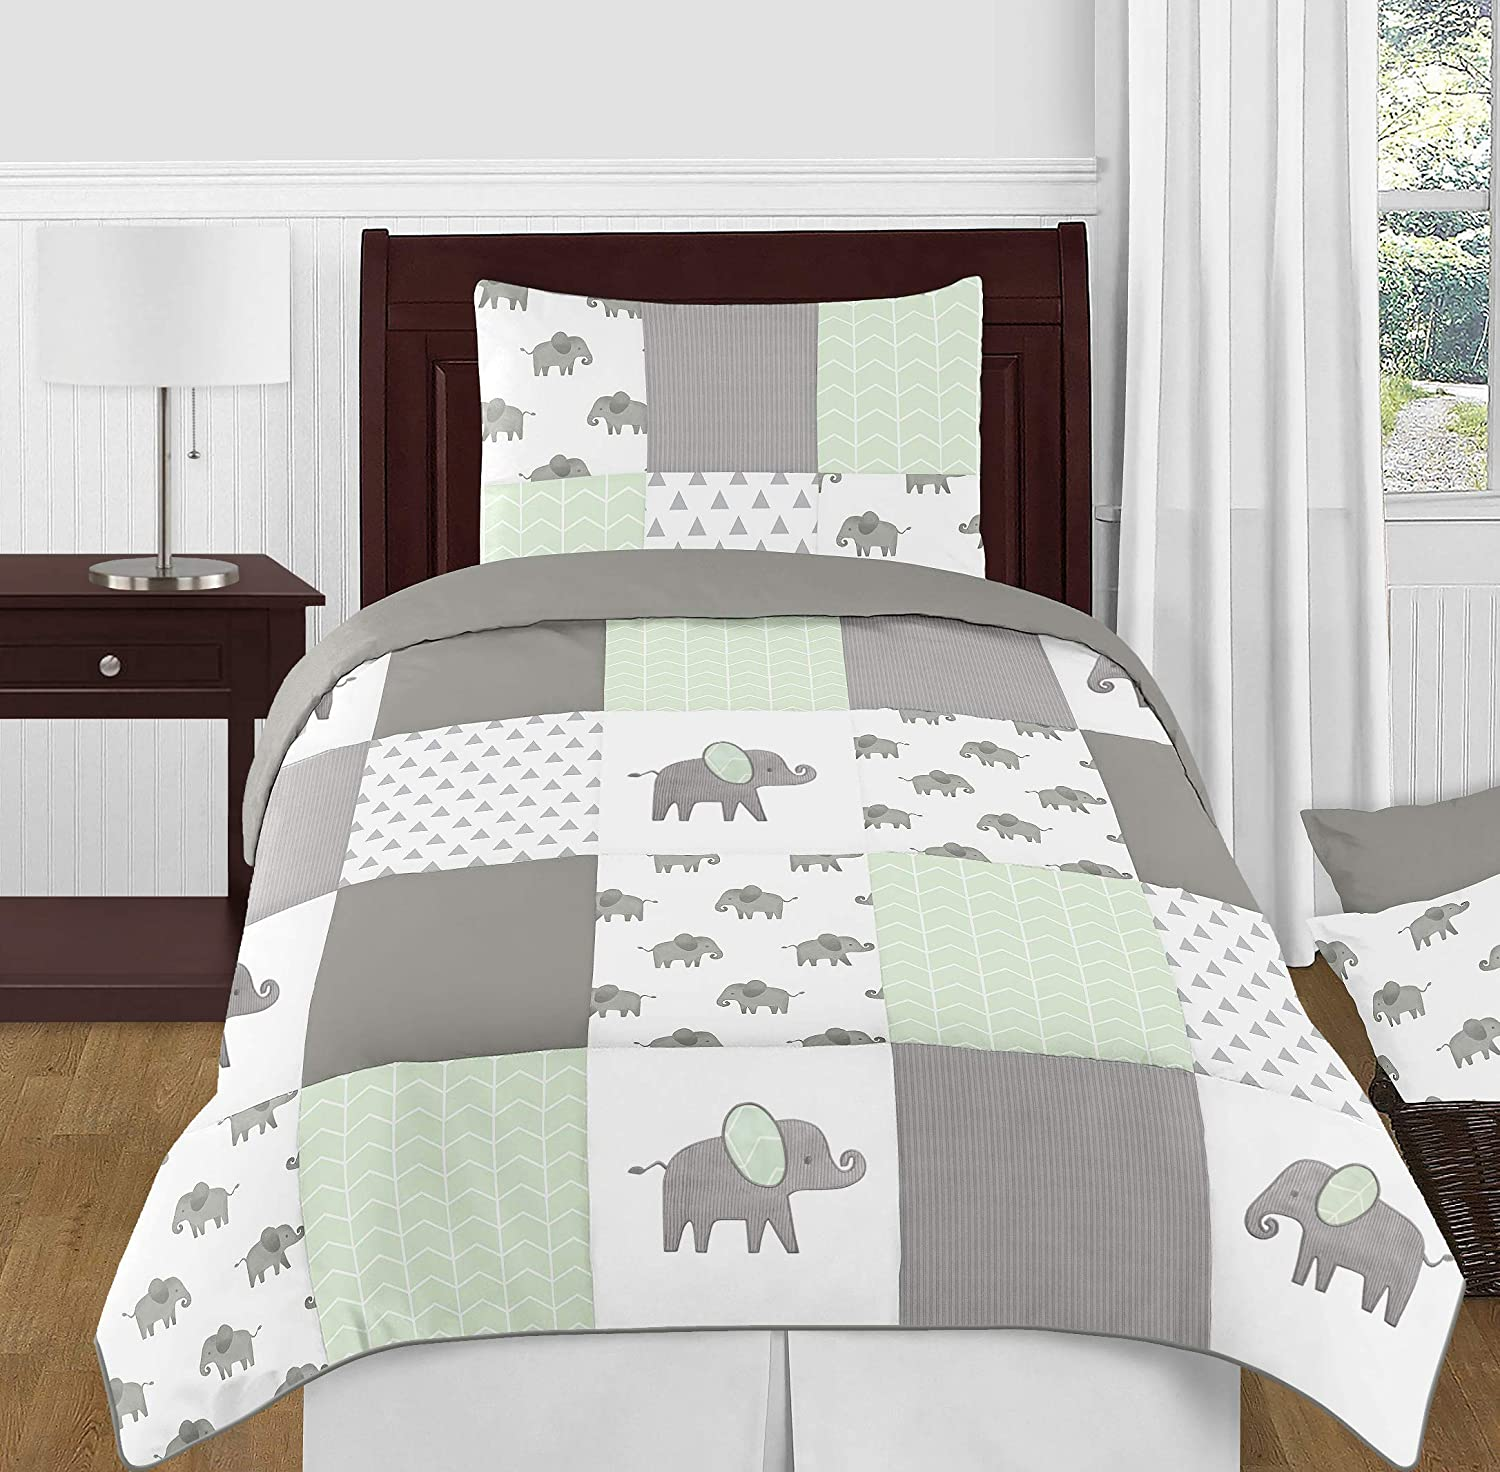 Sweet Jojo Designs Grey and White Wallpaper Wall Border for Mint Watercolor Elephant Safari Collection